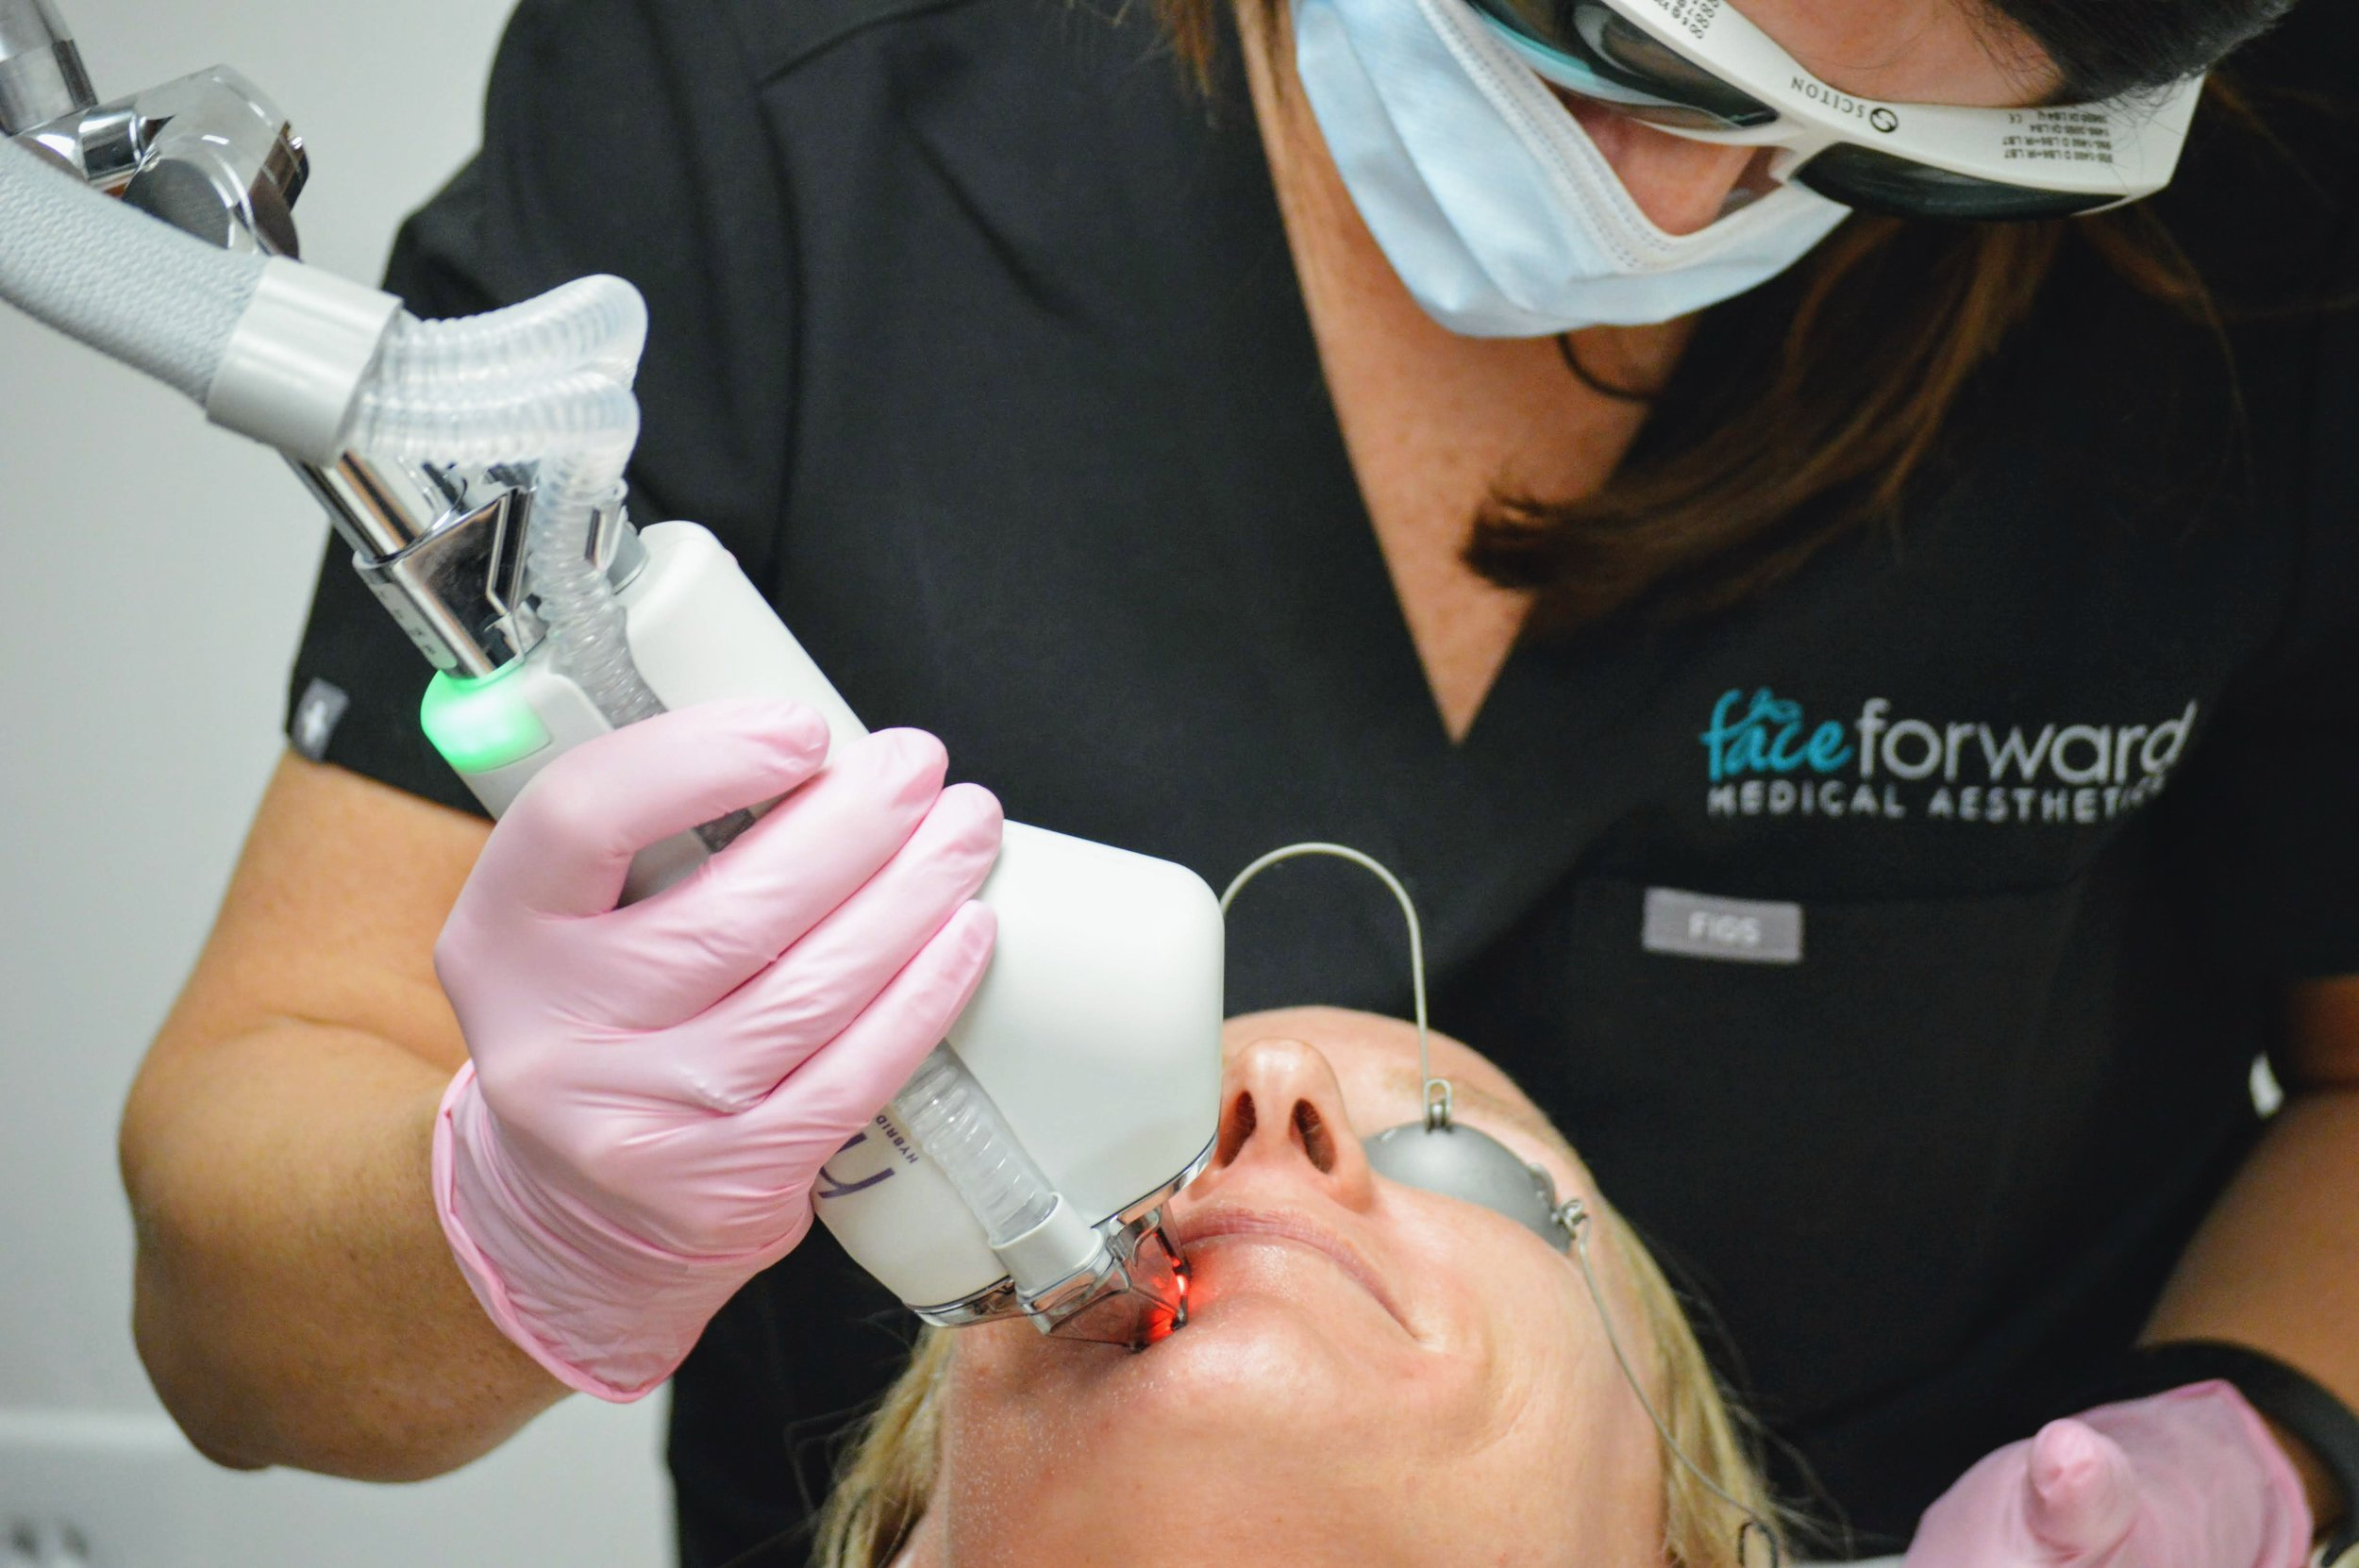 Halo Laser skin rejuvenation in Lexington, MA